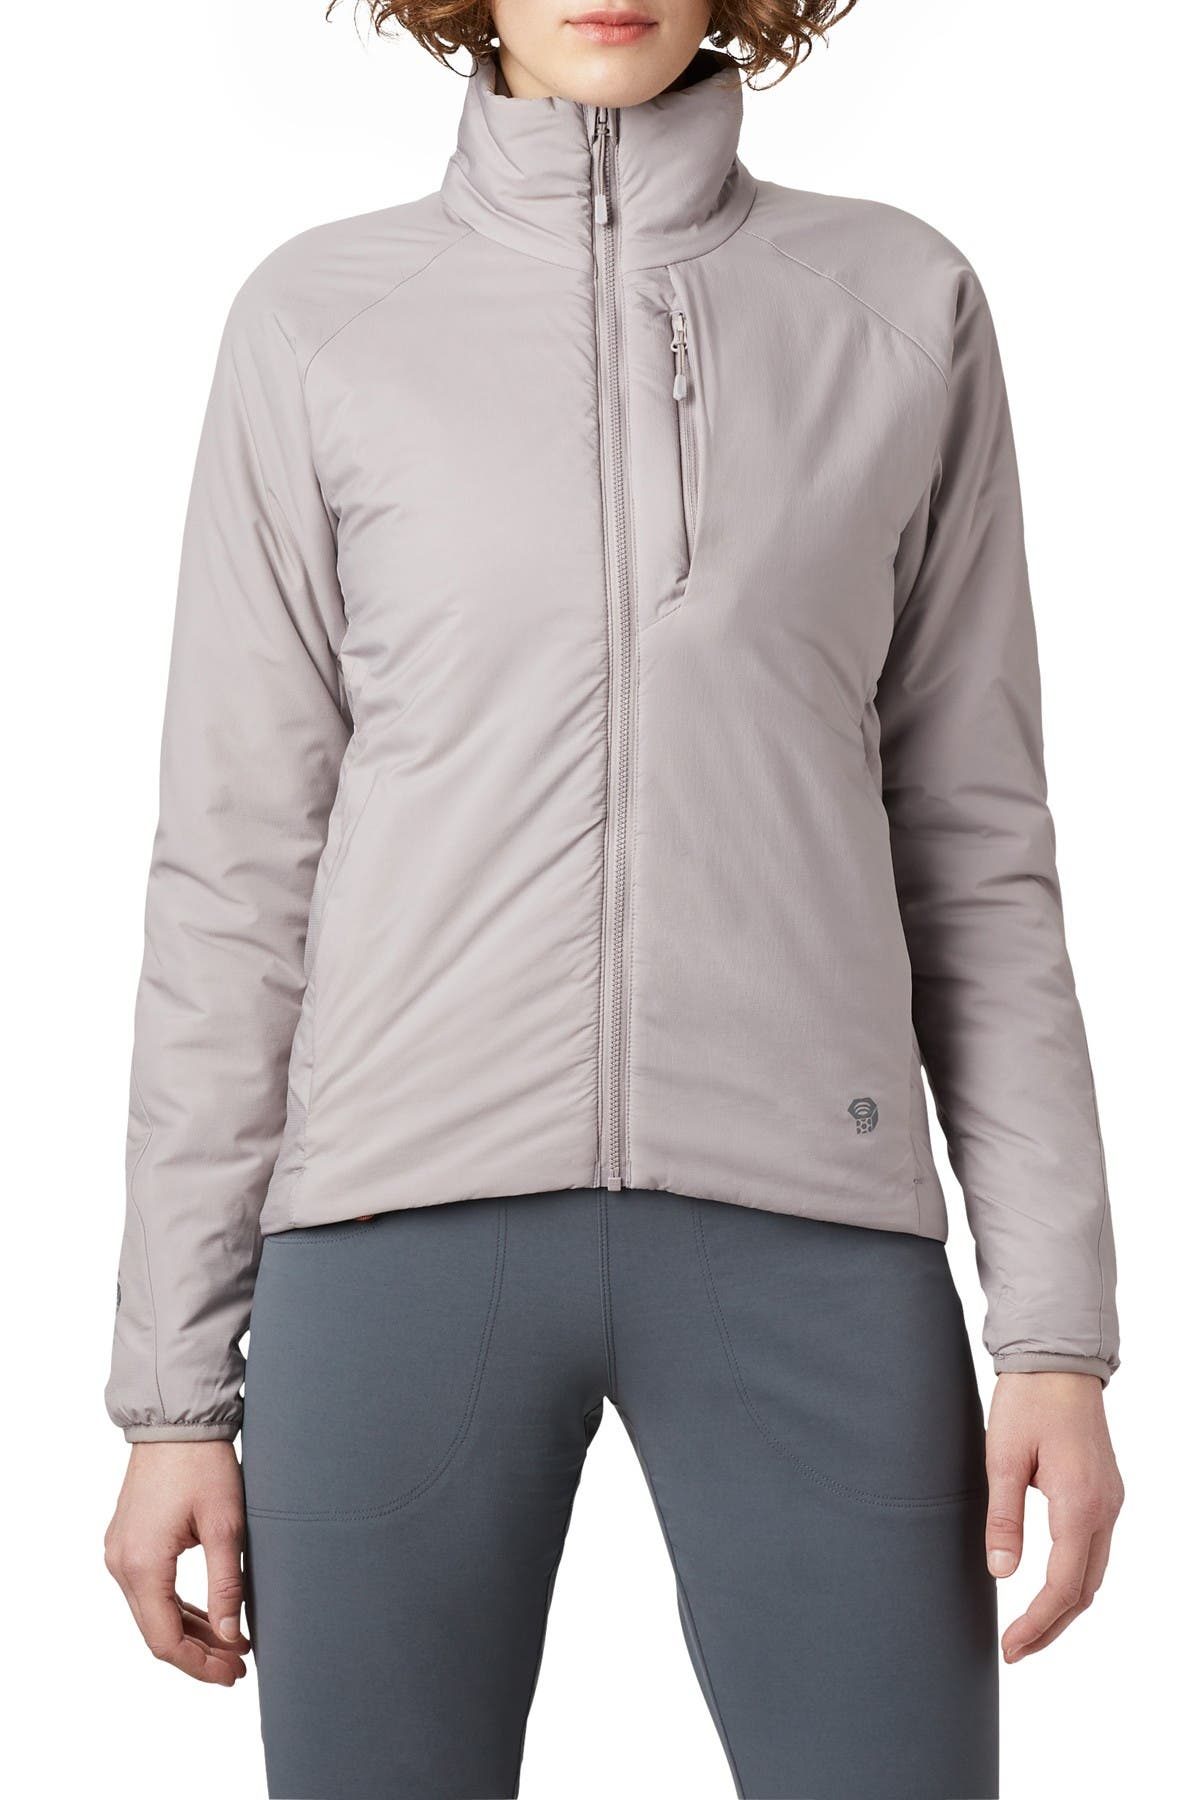 Image of MOUNTAIN HARDWEAR Kor Strata Packable Primaloft Insulated Jacket